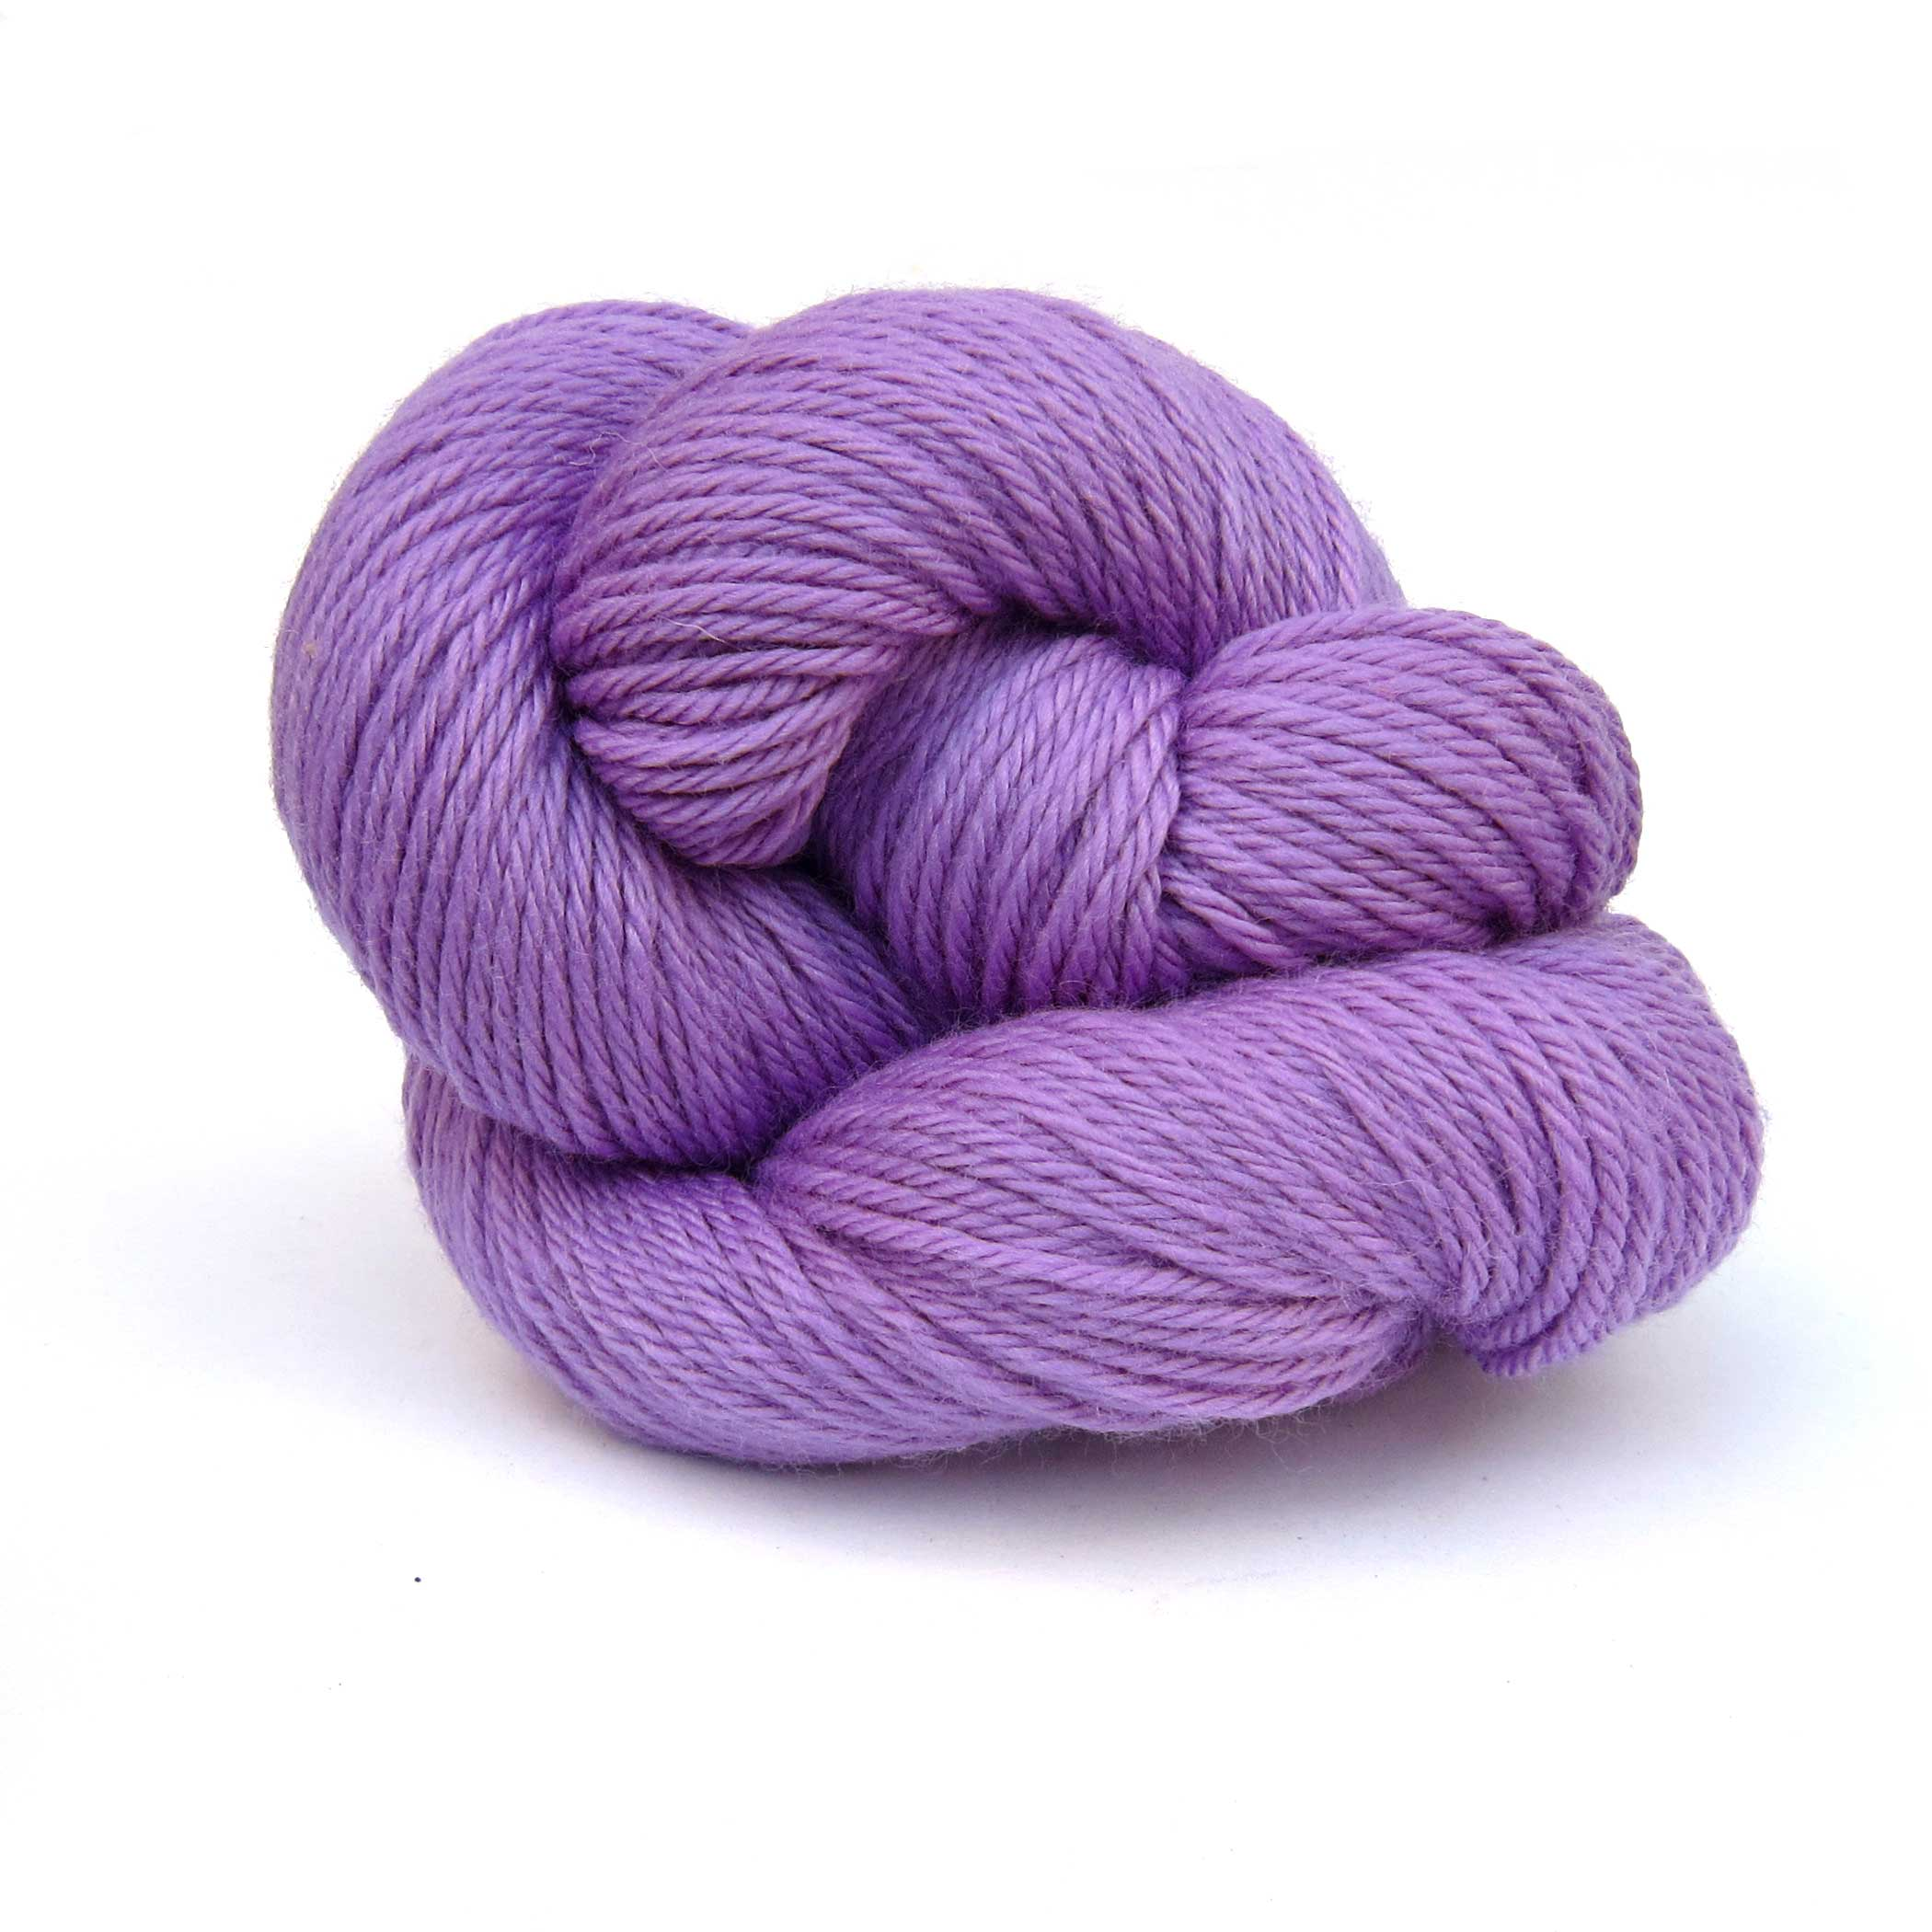 Lavender Louet Gems 100% Merino Superwash Yarn